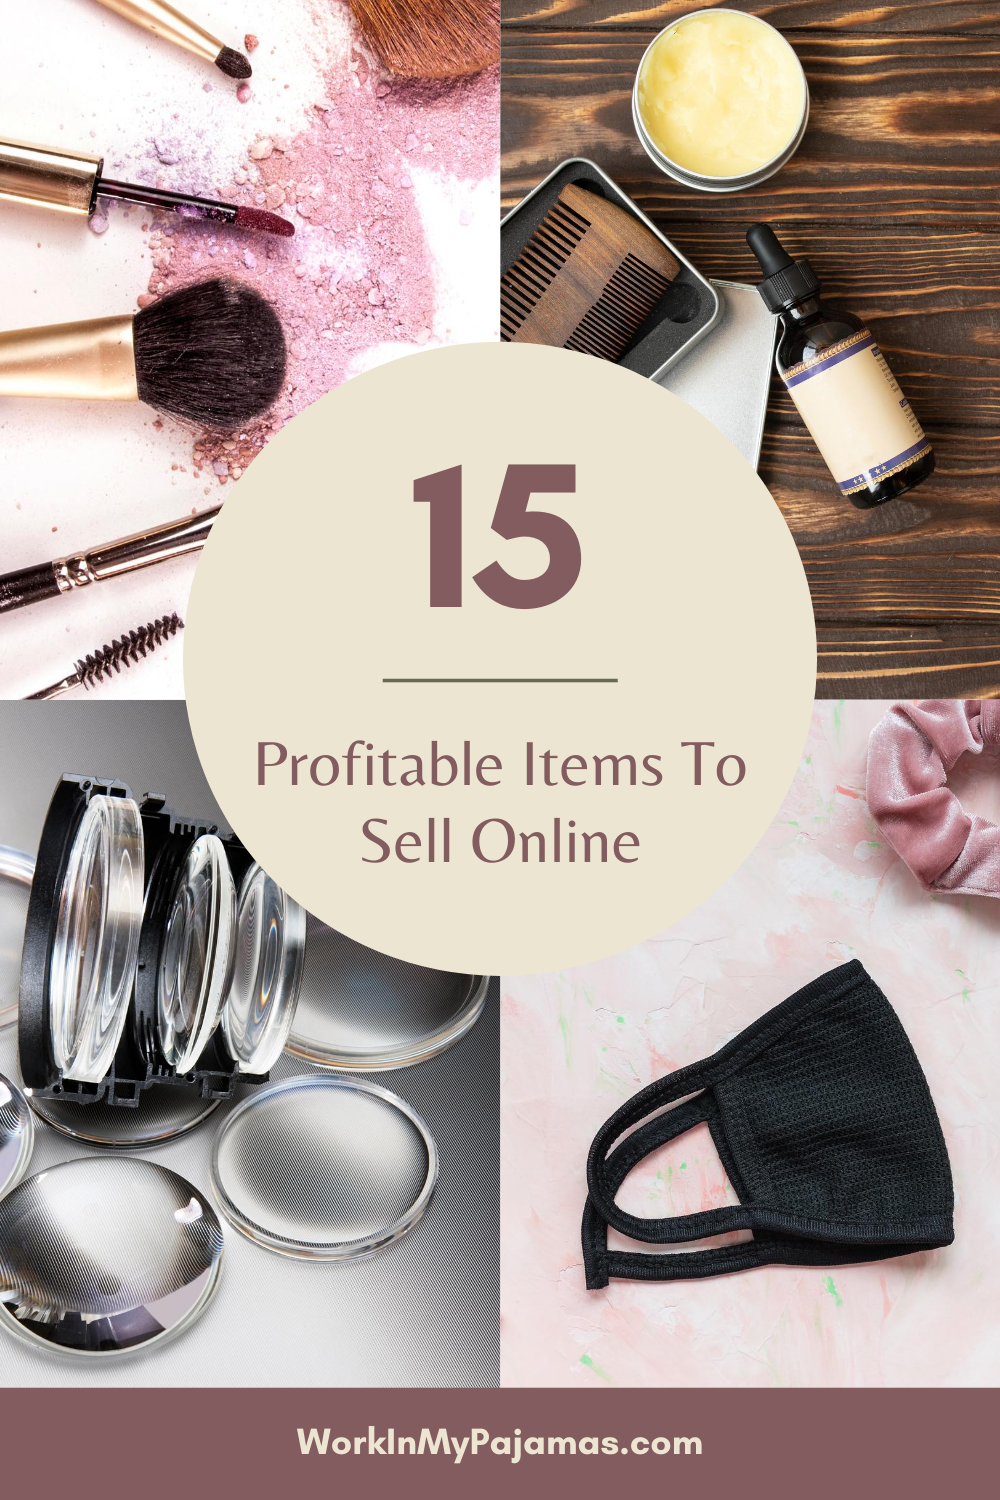 The 15 Most Profitable Items to Sell Online in 2020